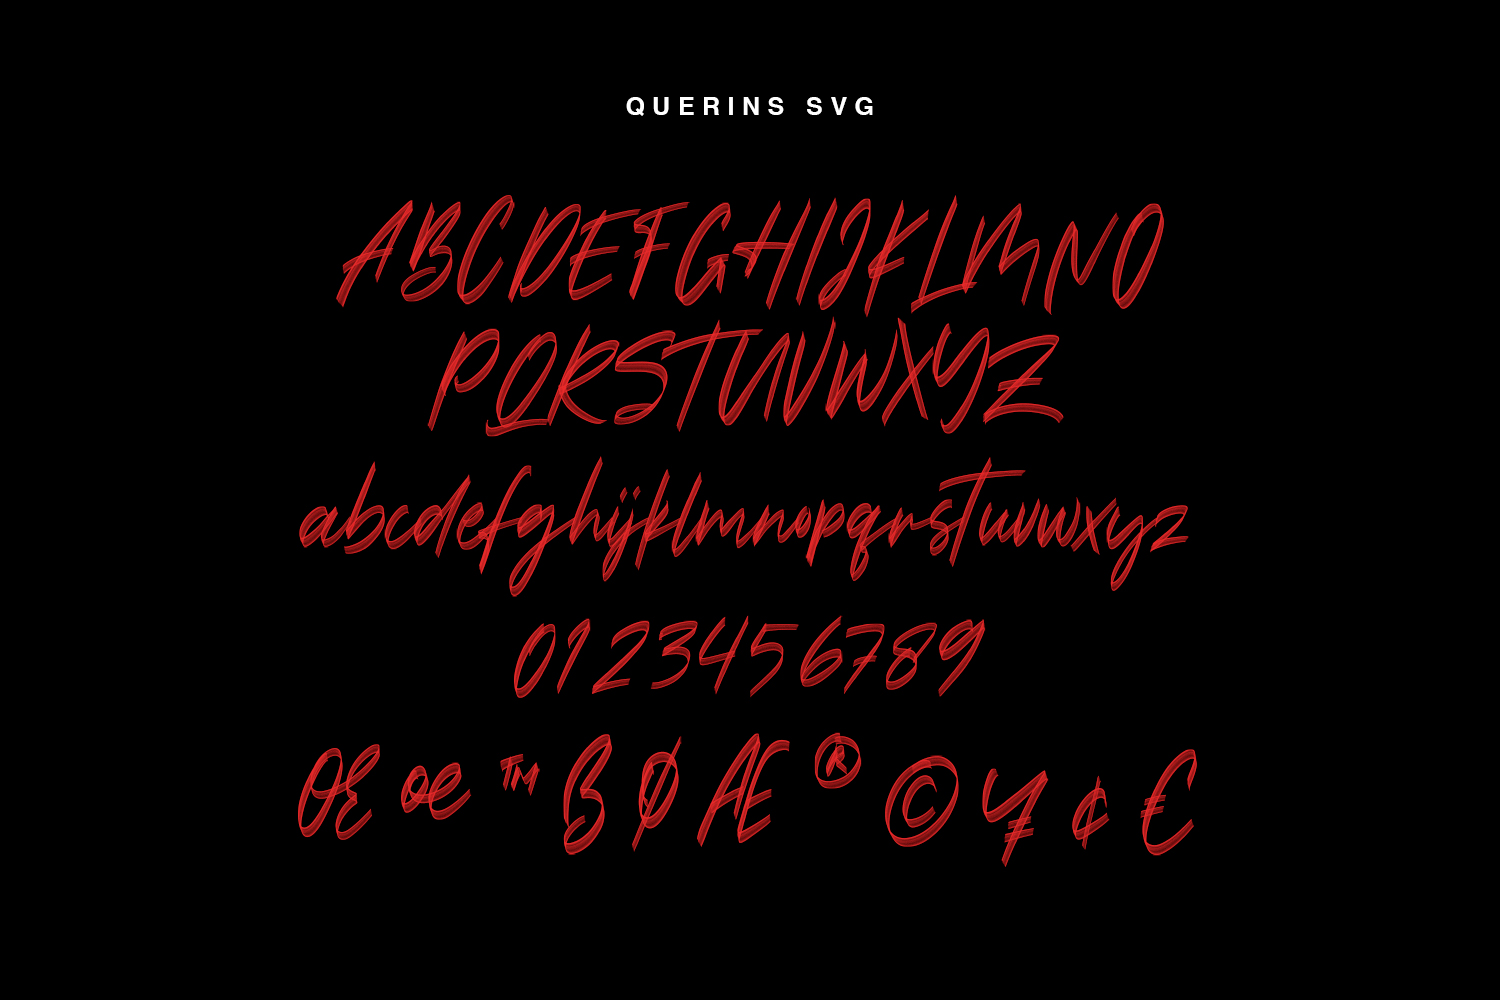 Querins SVG Brush Font example image 7